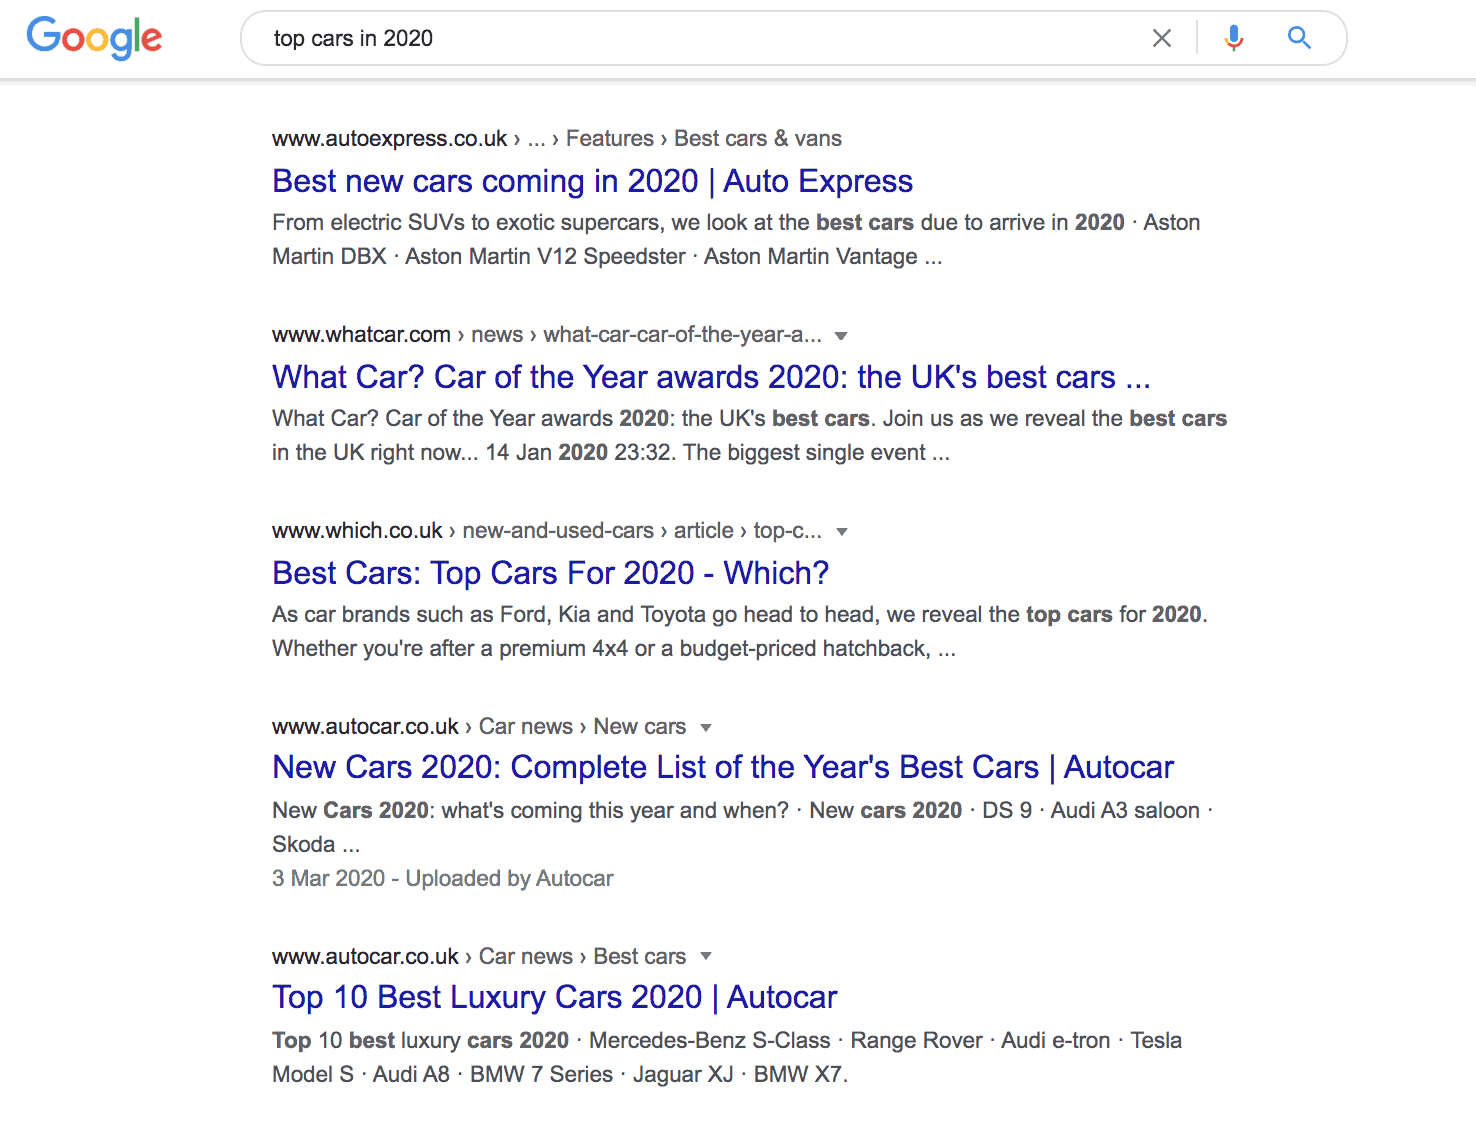 Google search results for top cars in 2020